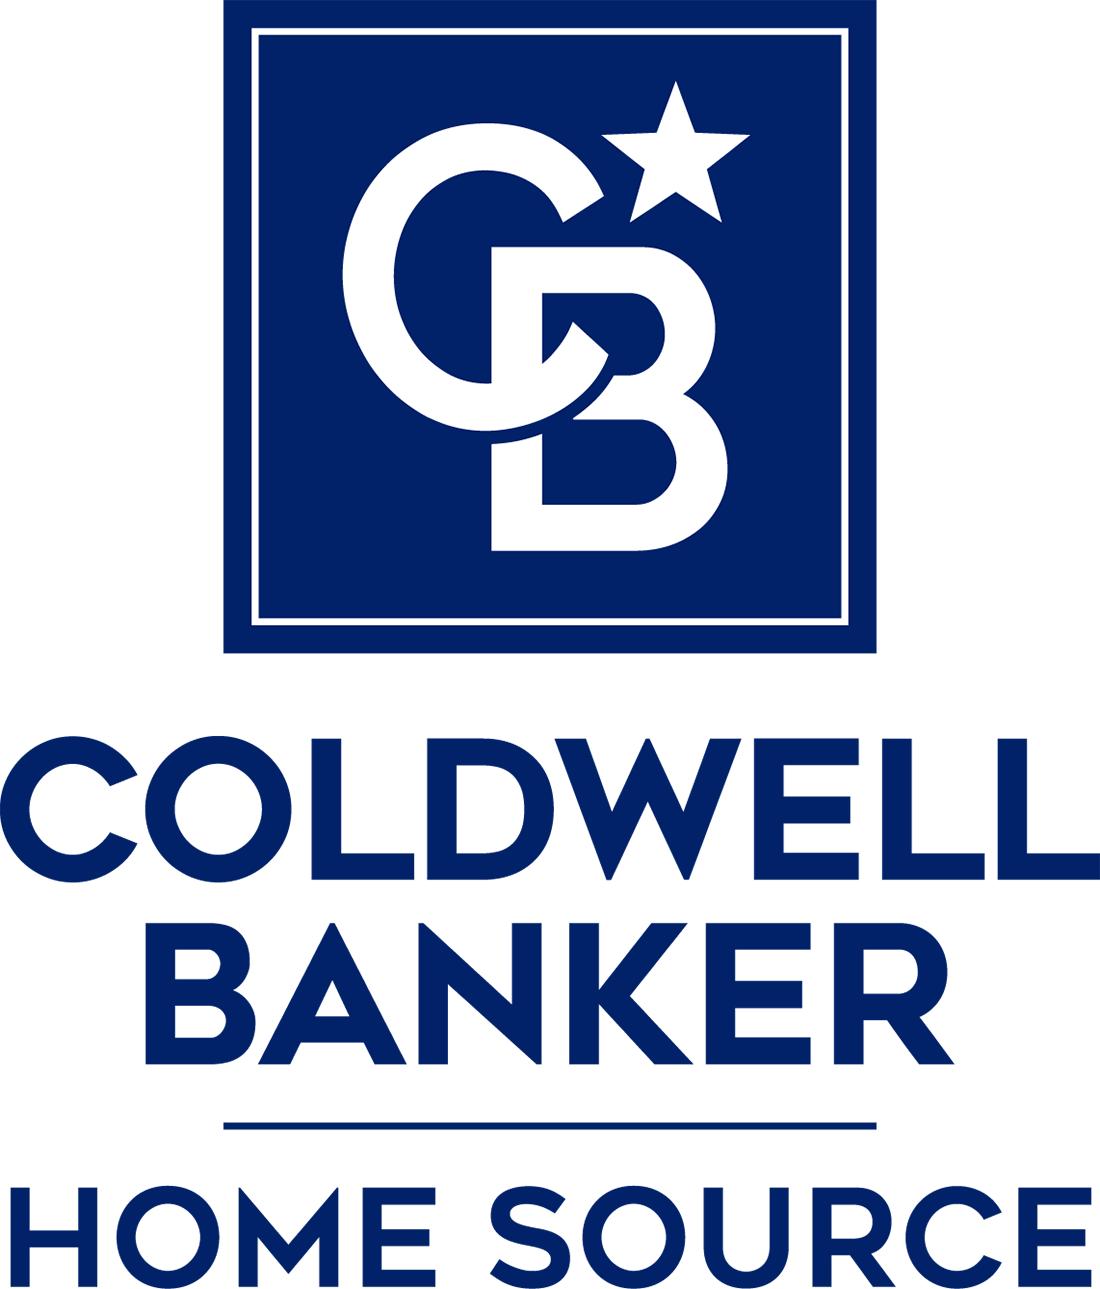 Team Love - Coldwell Banker Home Source Logo